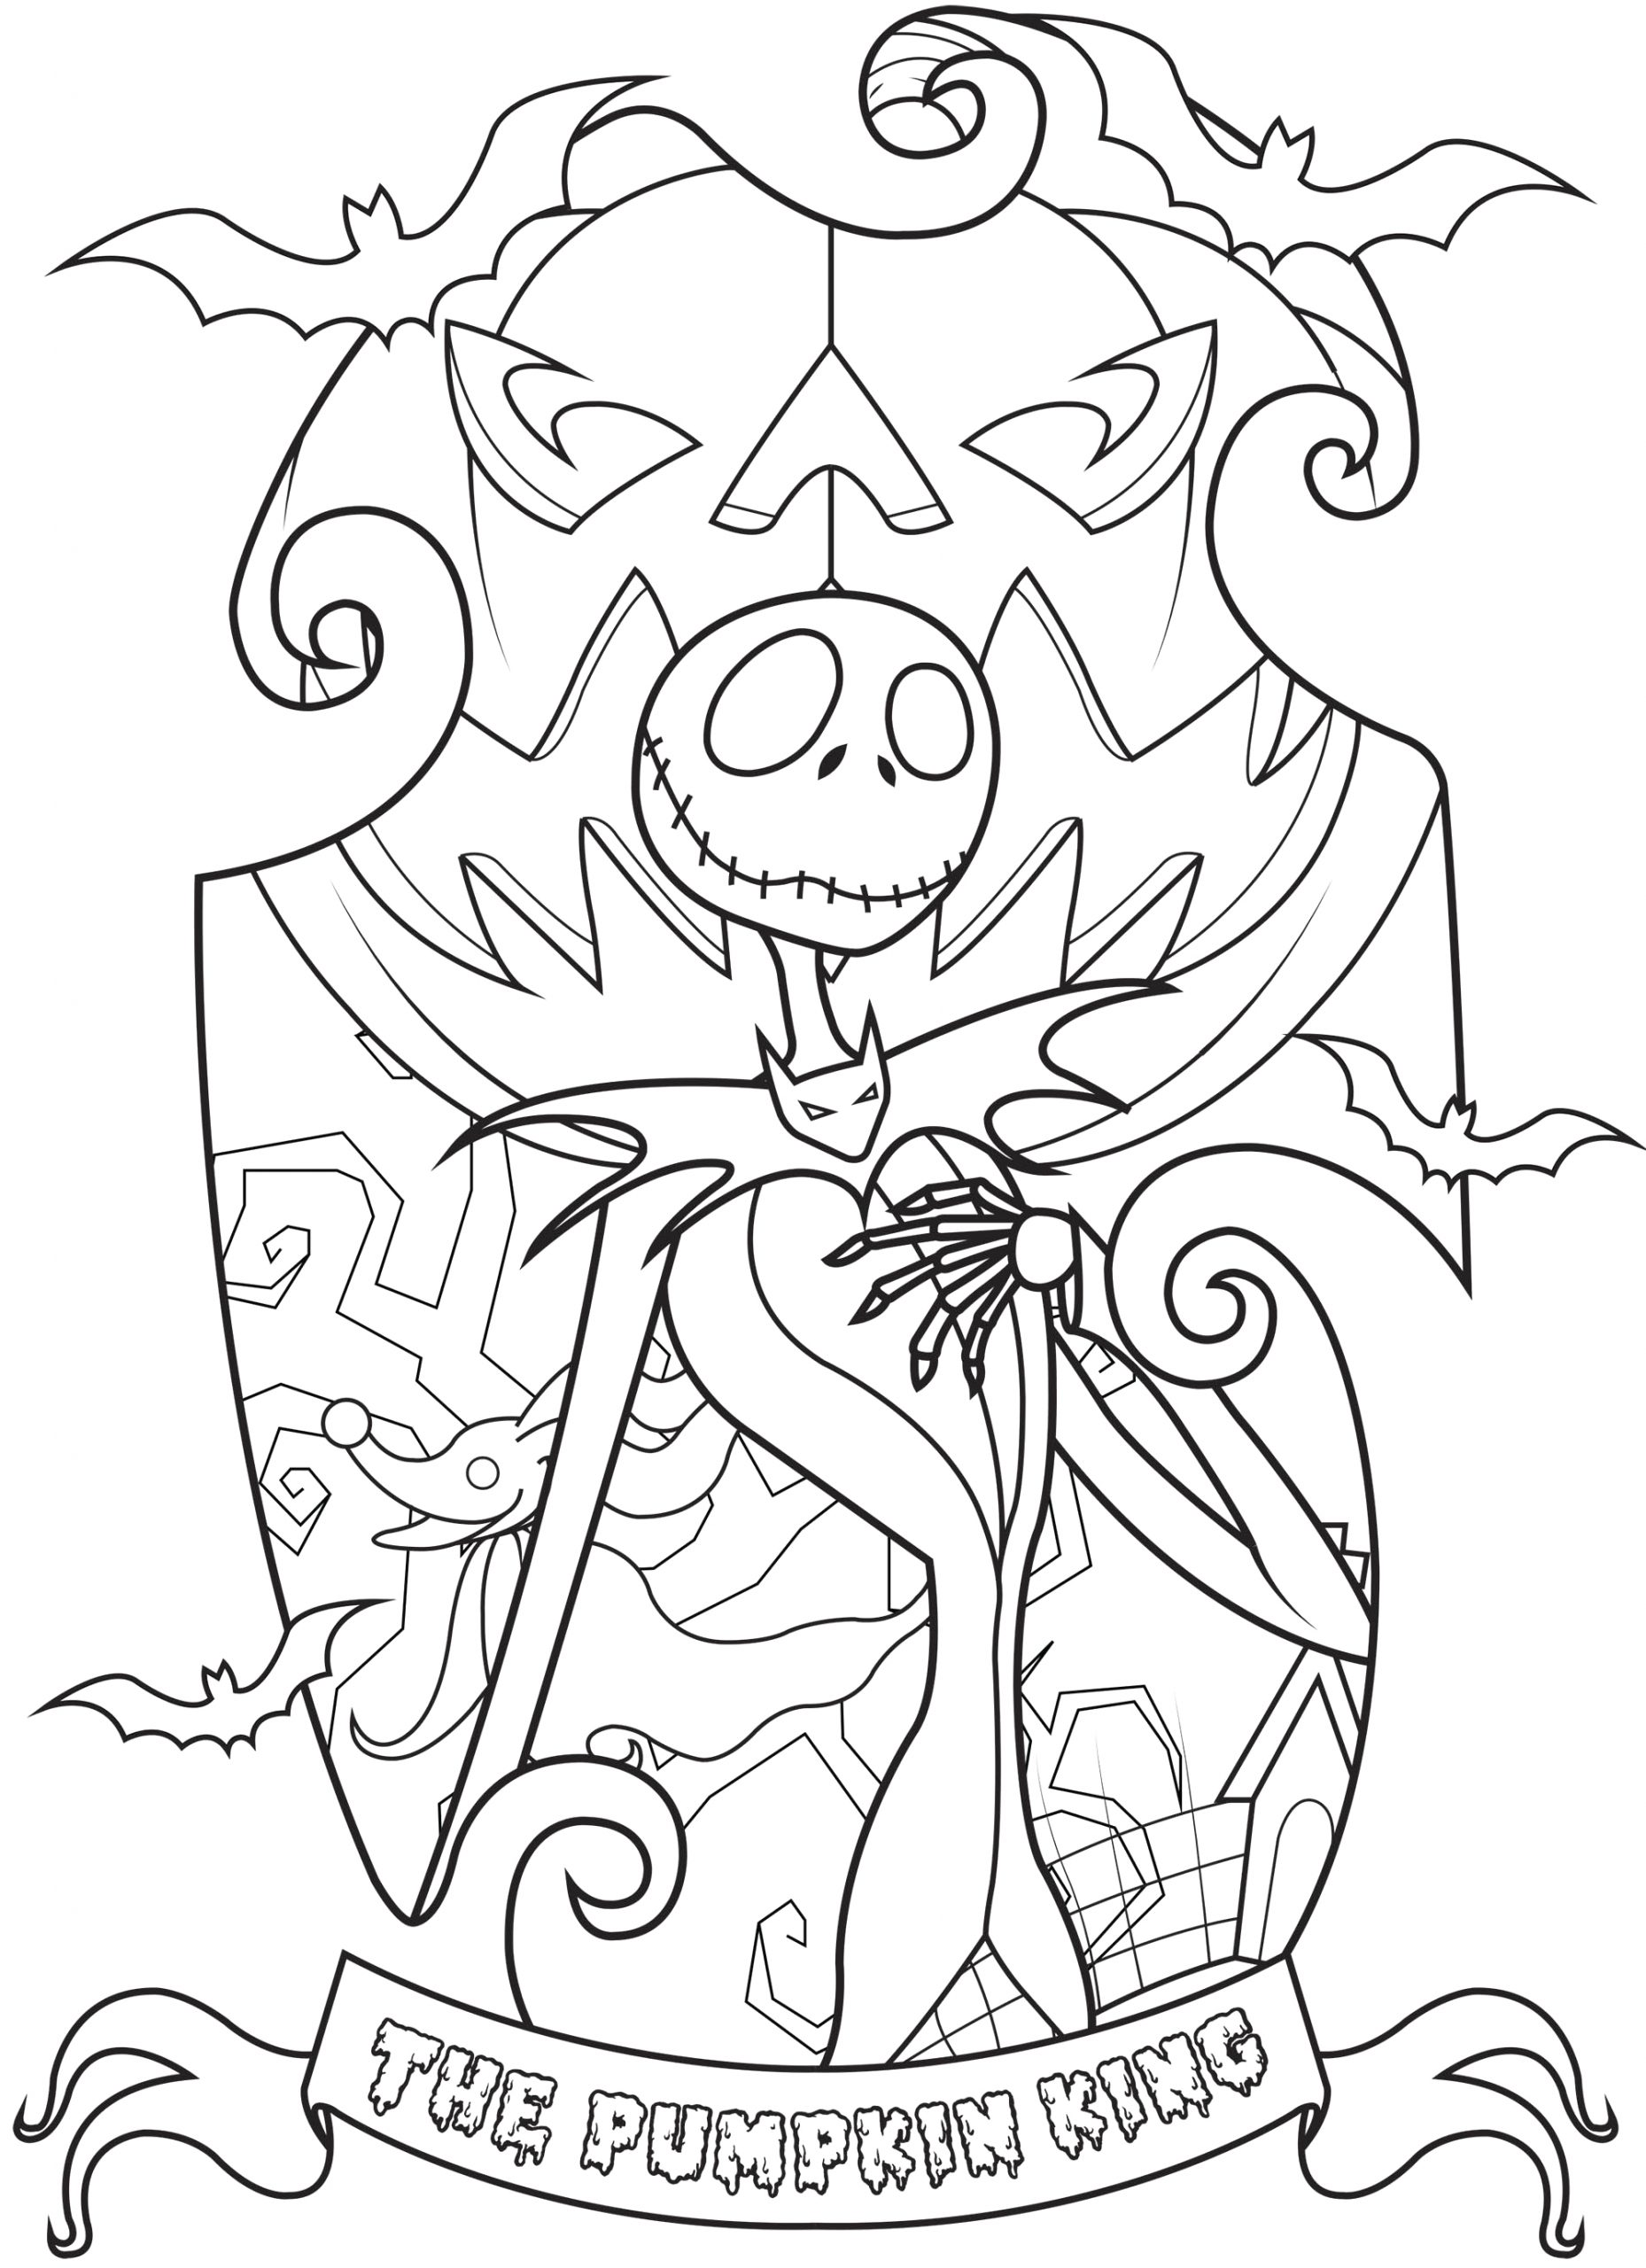 Nightmare before Christmas Halloween Coloring Pages for Adults Jack Skellington King Of Halloween town Plex